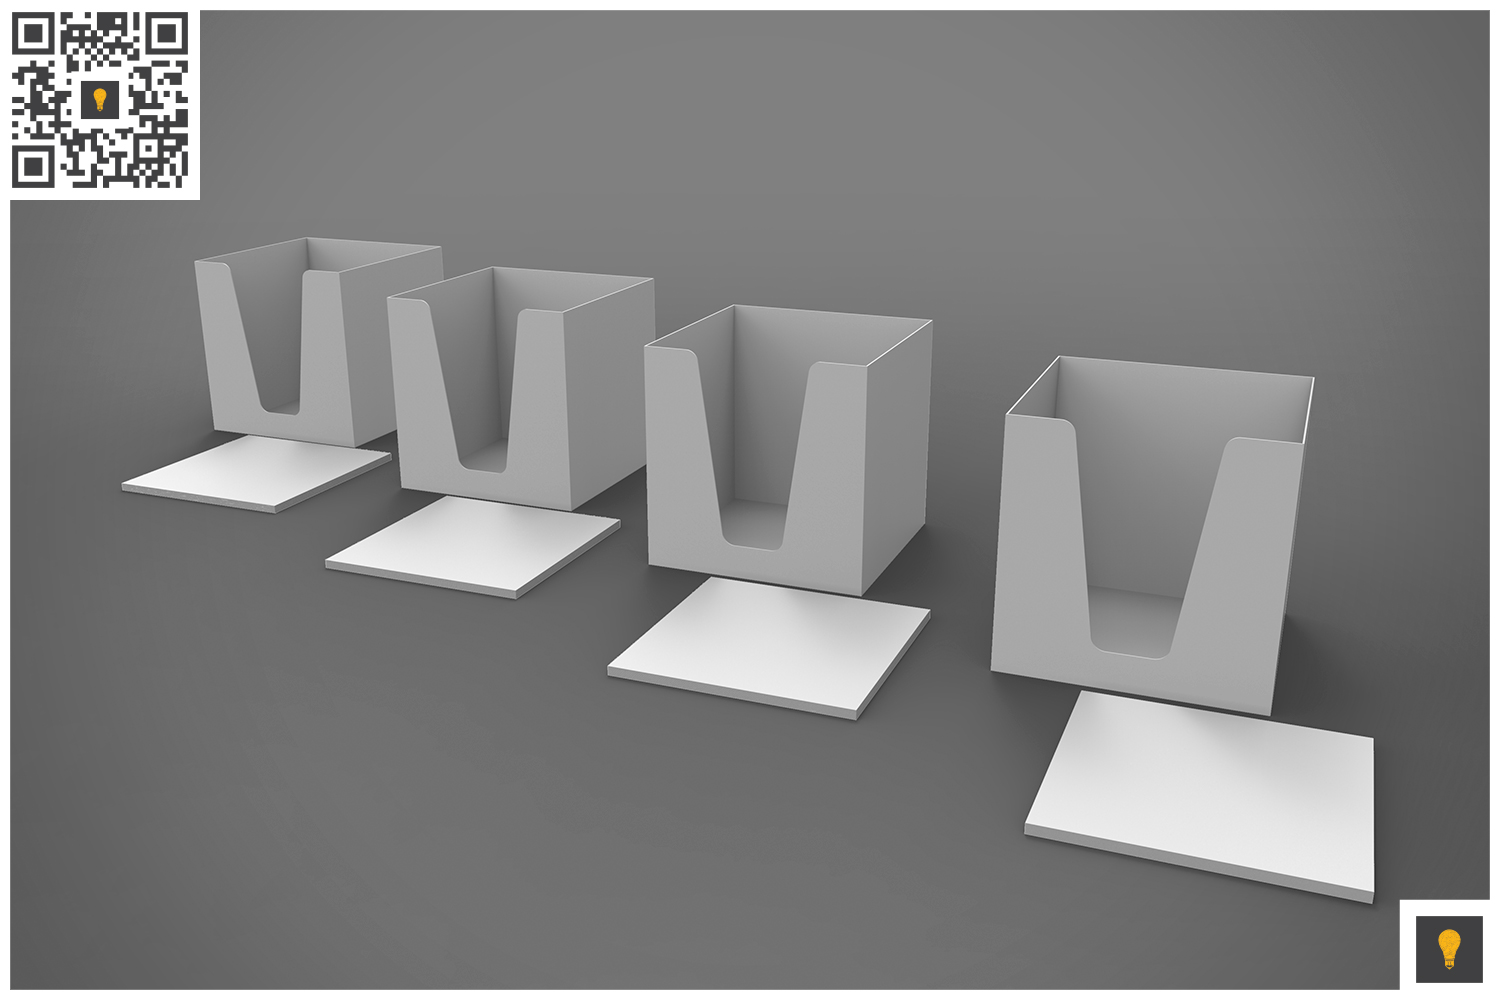 Notepad Holder & Notes 3D Render example image 4